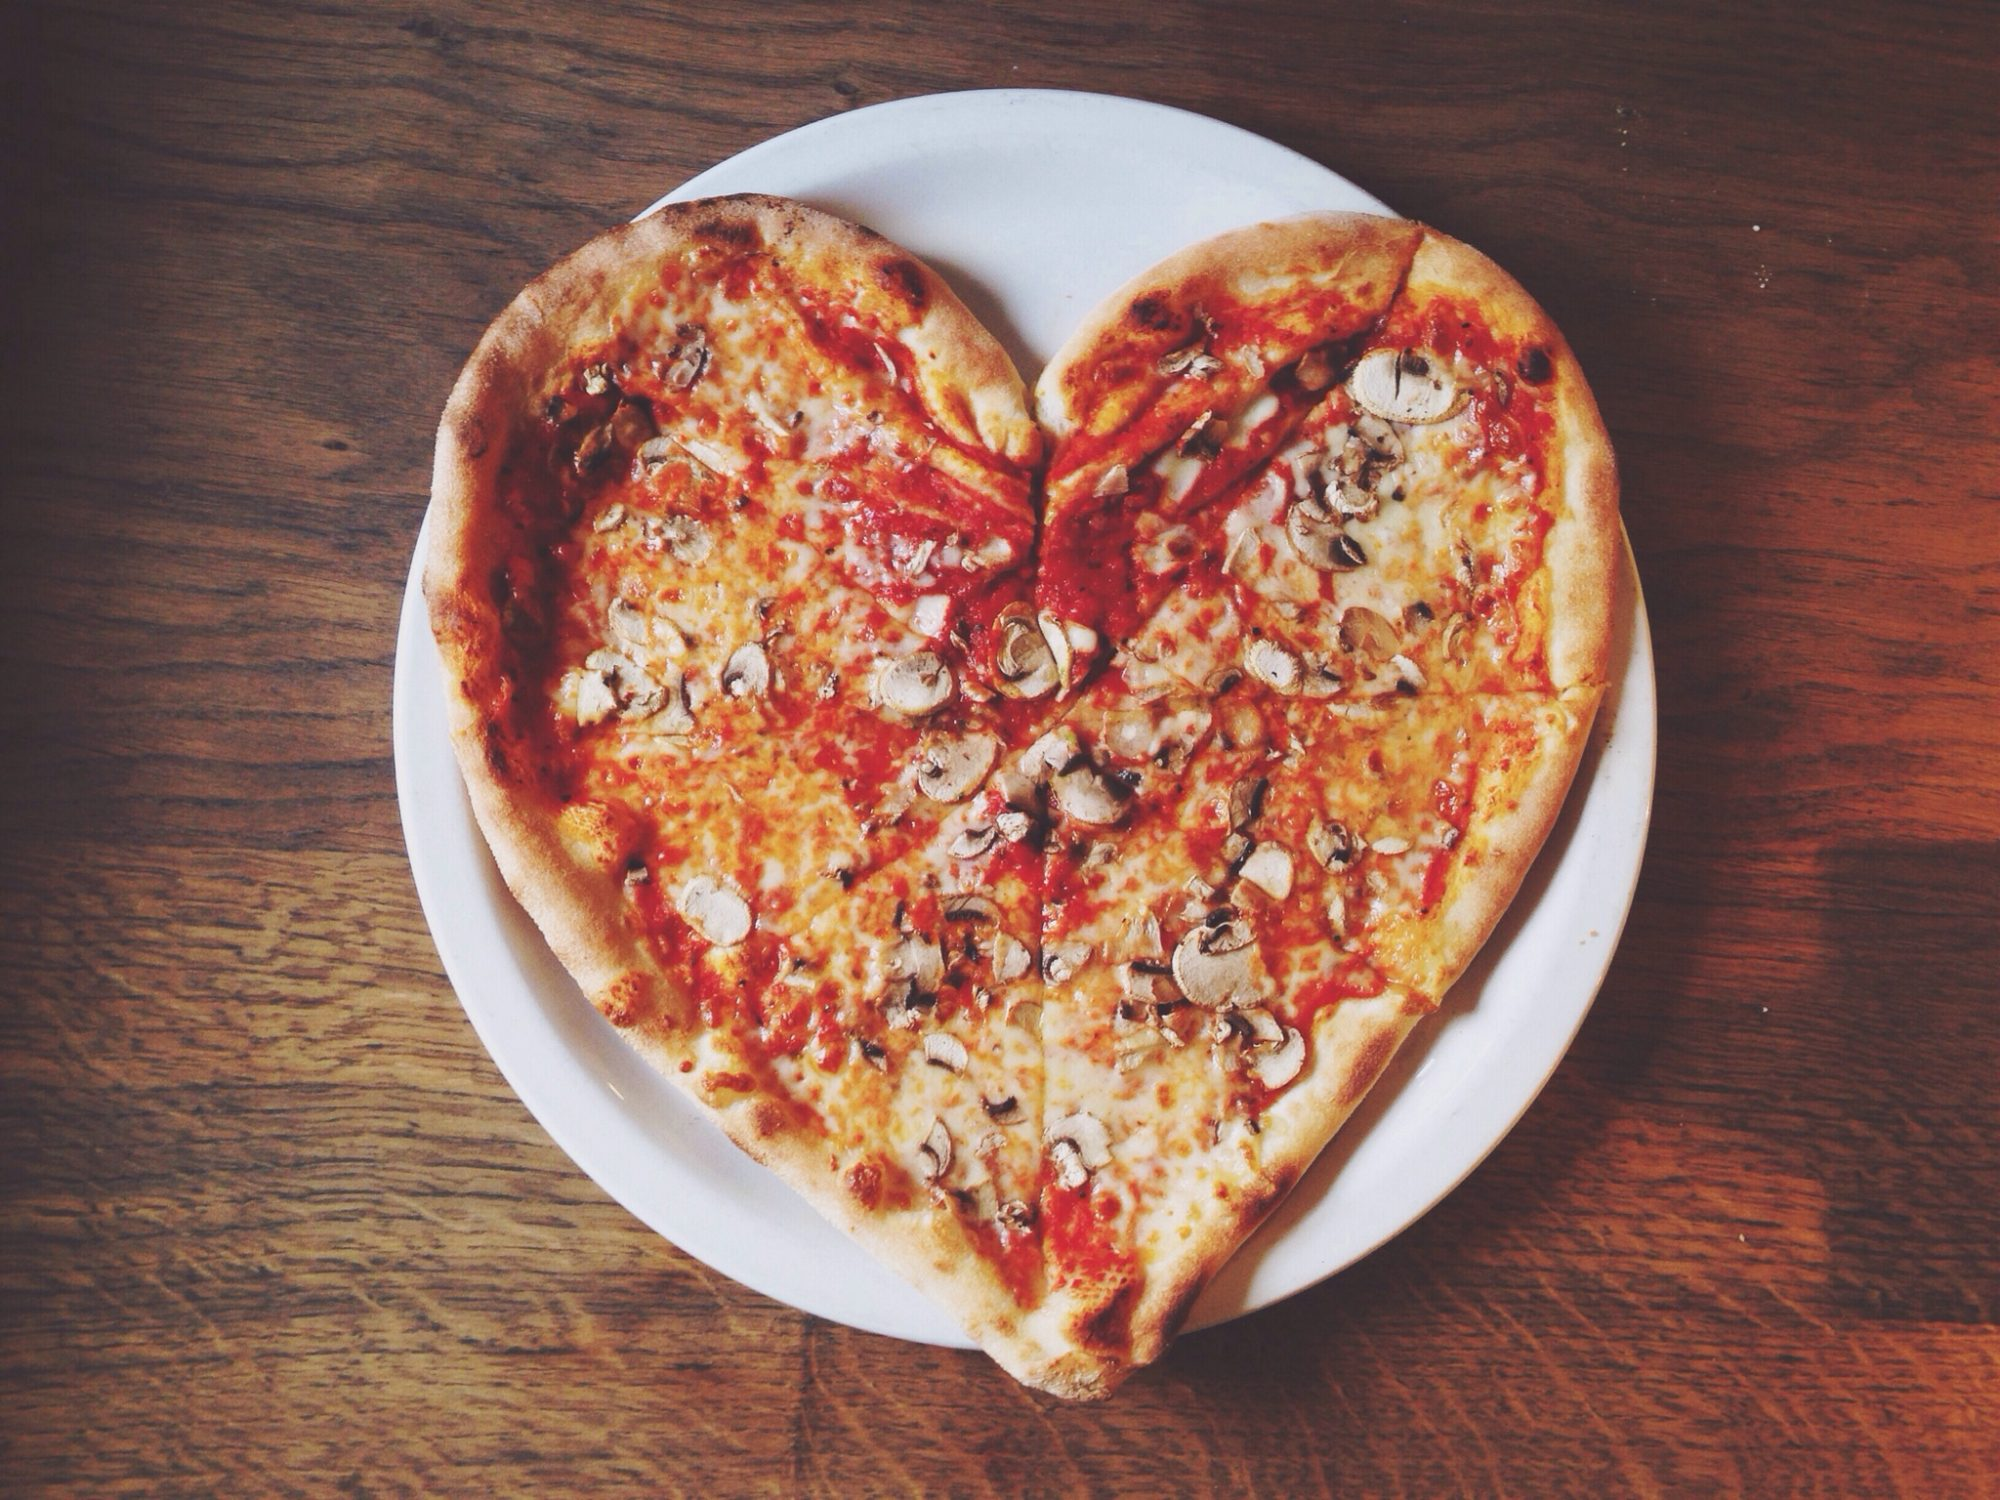 getty-pizza-heart-image